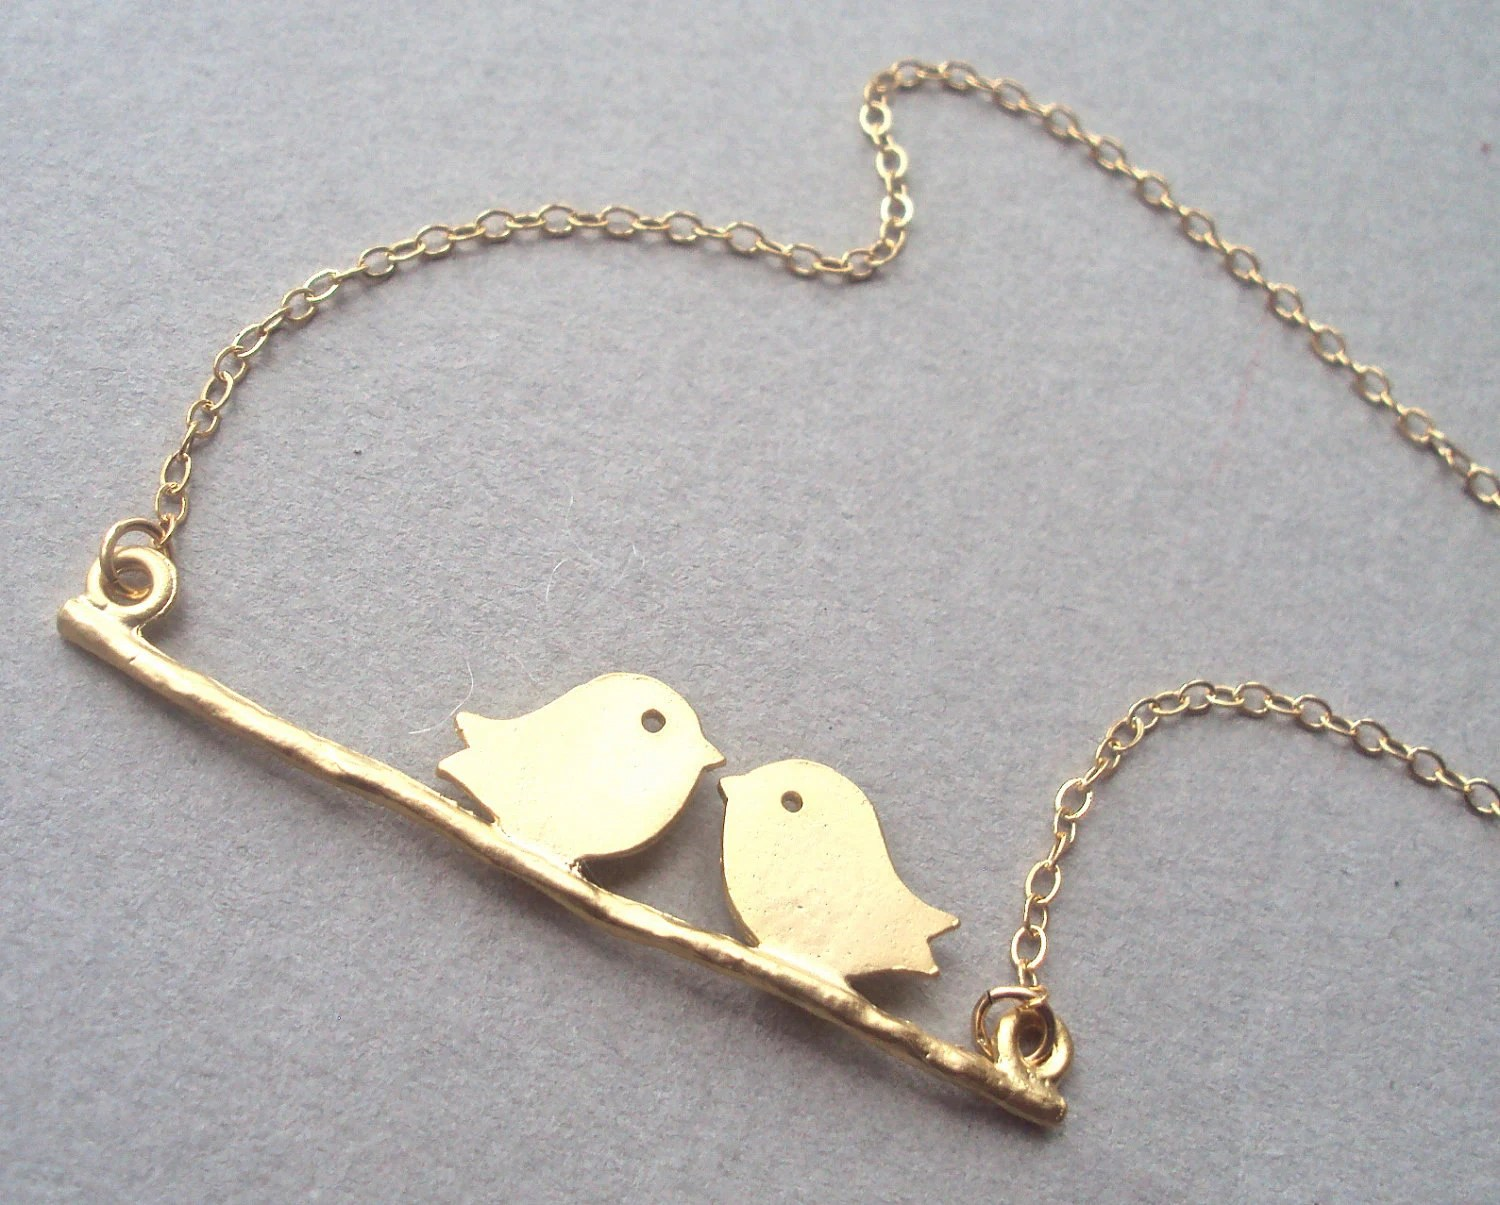 Gold Birds (love birds) necklace with gold filled chain - birds on branch